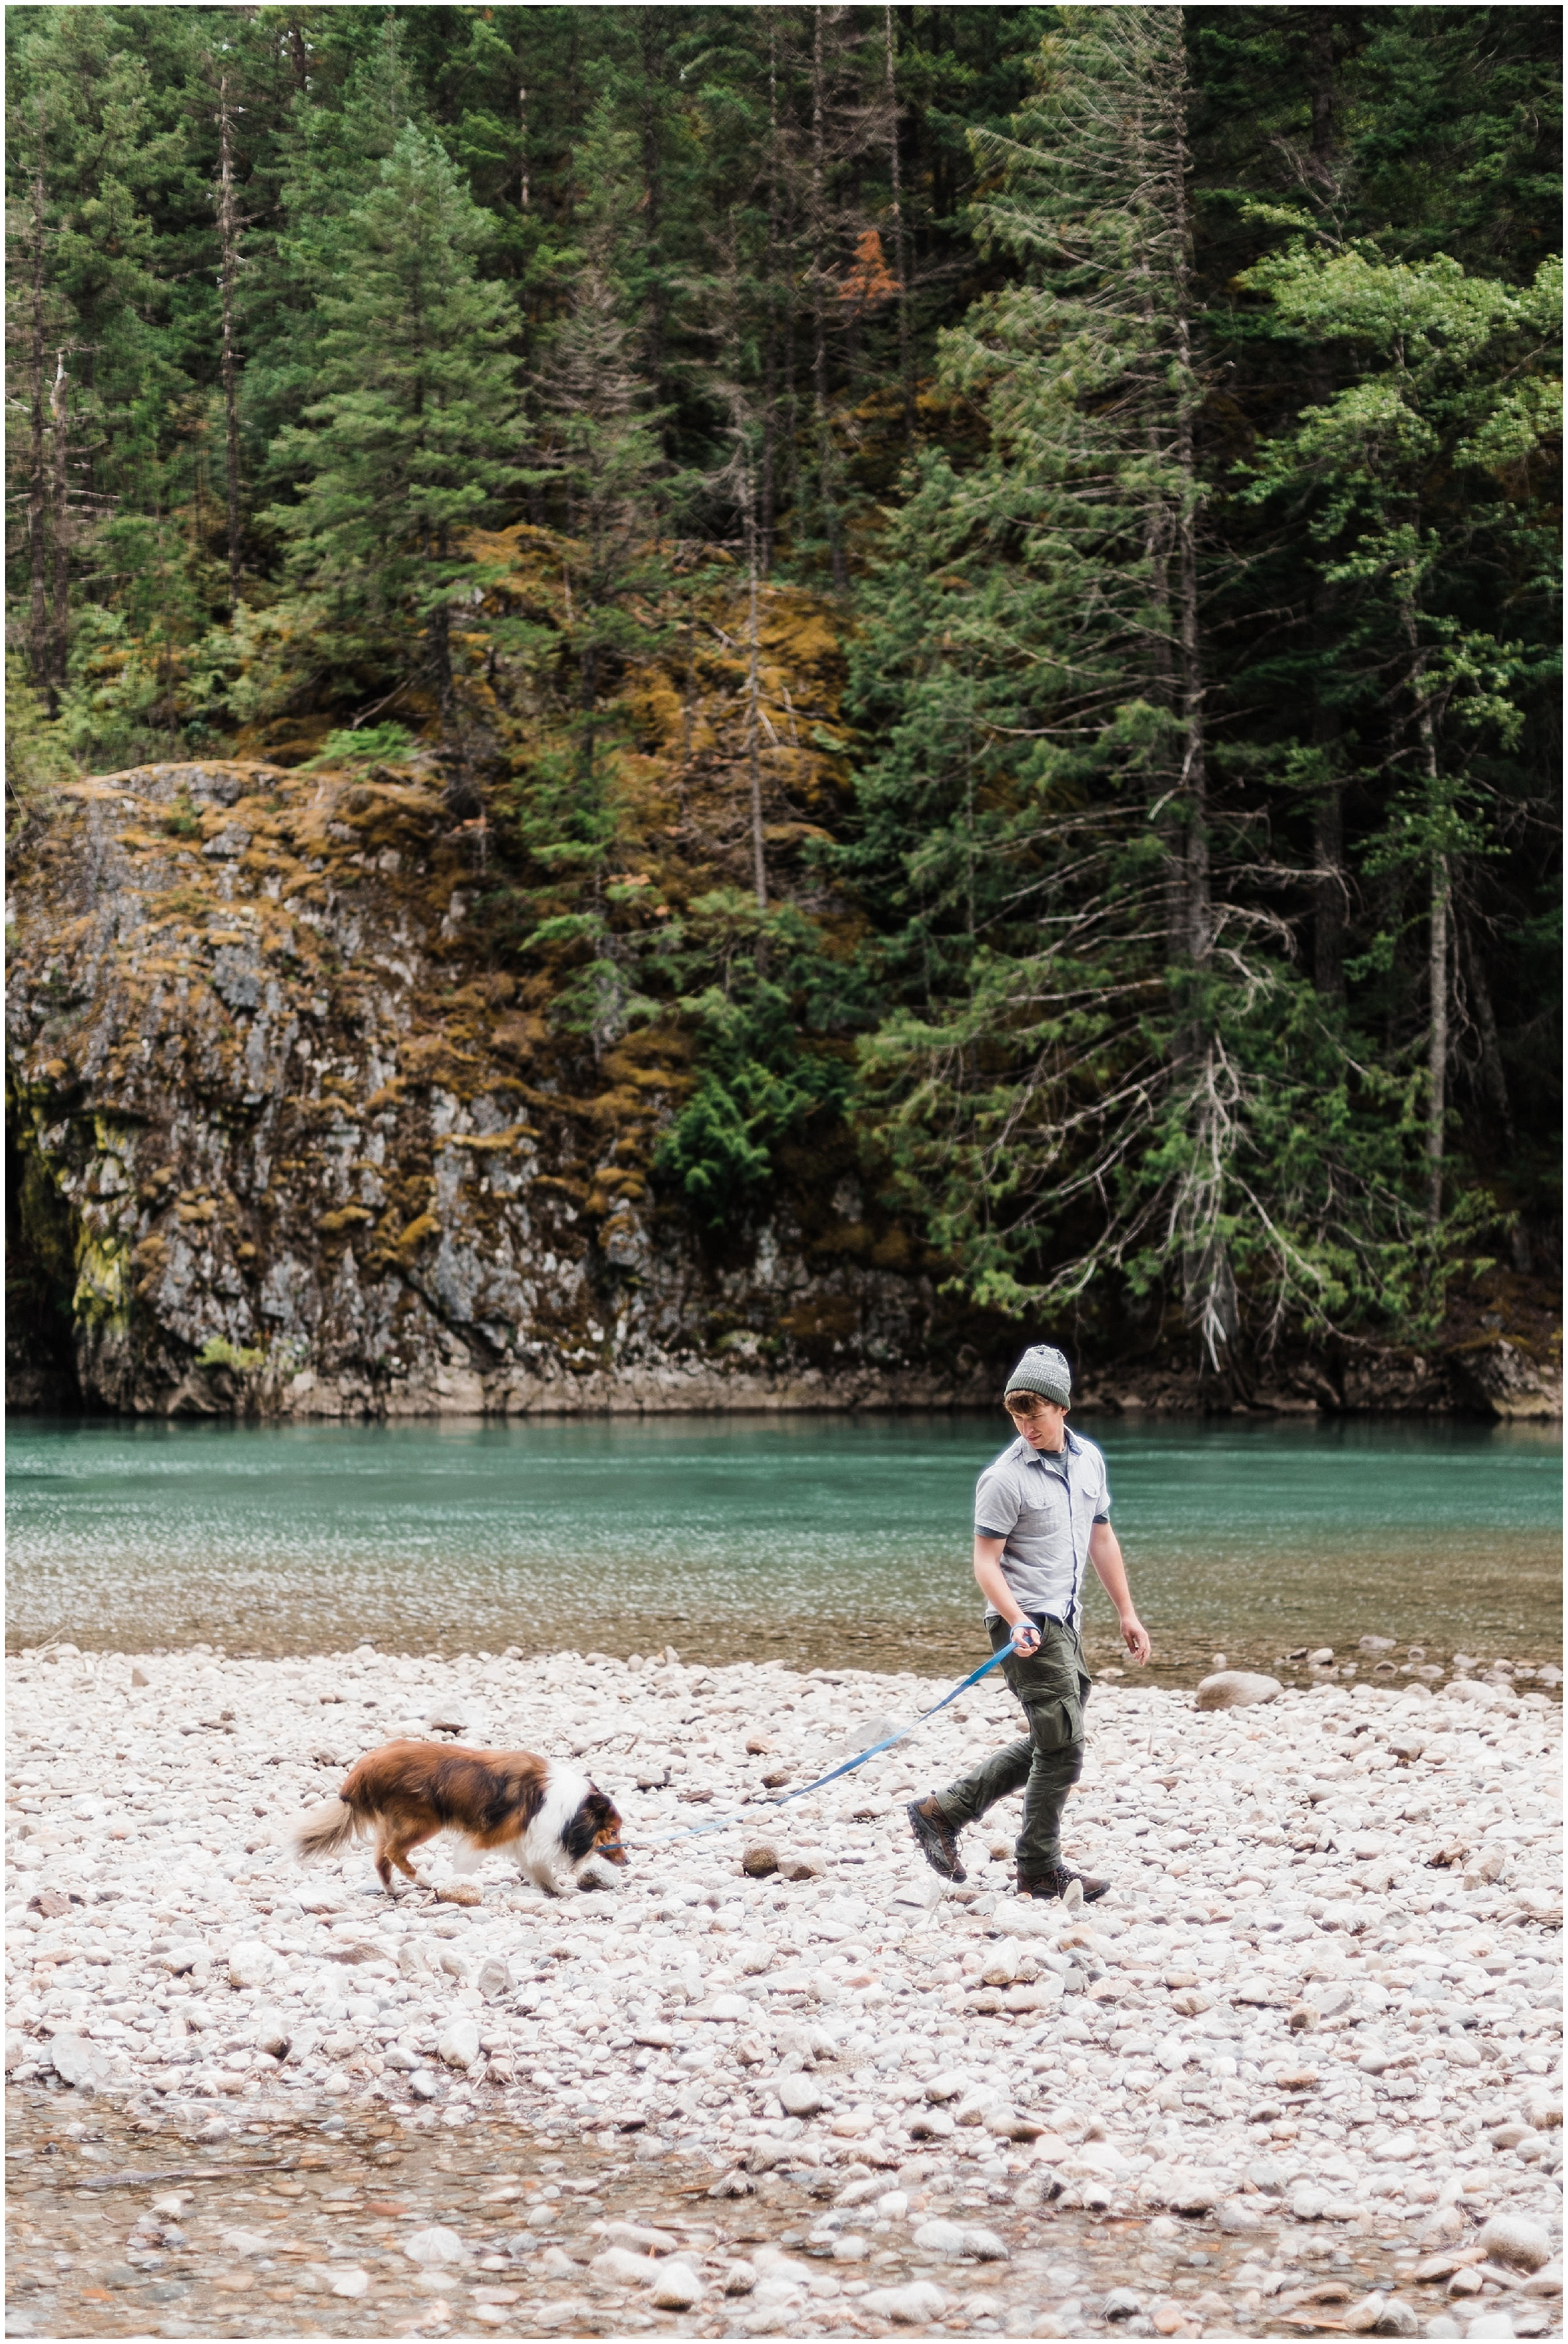 Photo of Devon walking our dog Simon along the banks of a river in North Cascades National Park by Forthright Photo